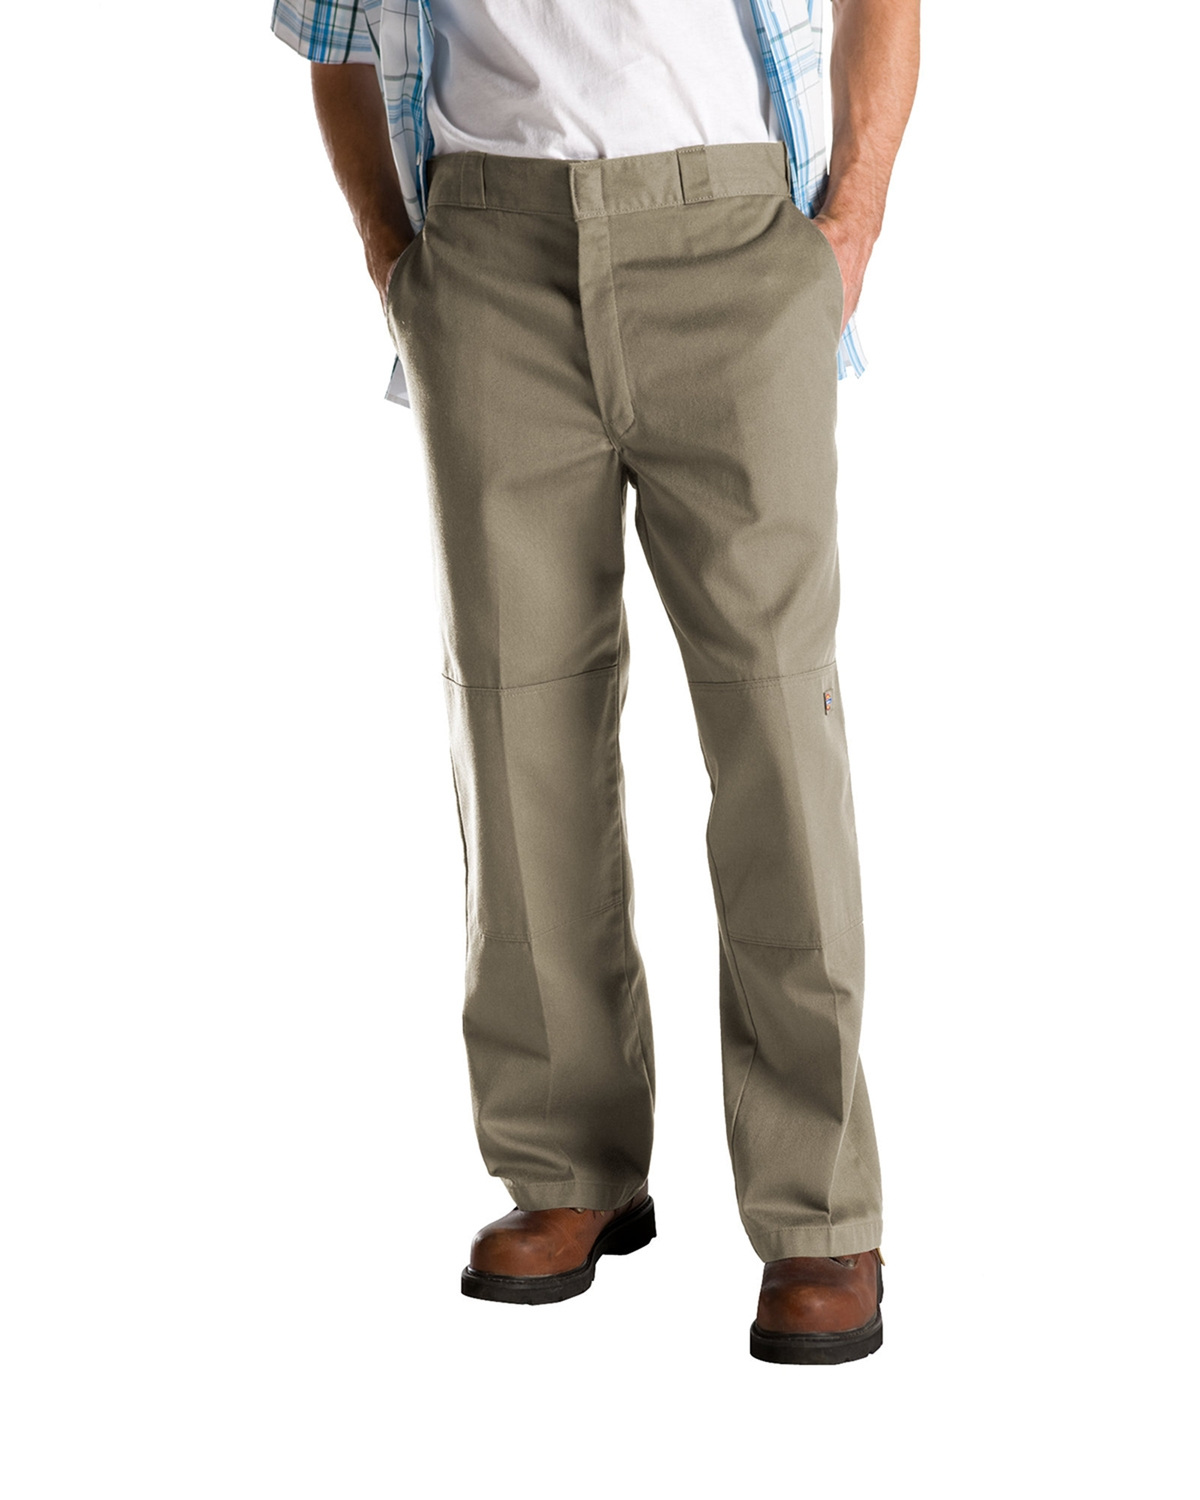 8.5 oz. Loose Fit Double Knee Work Pant